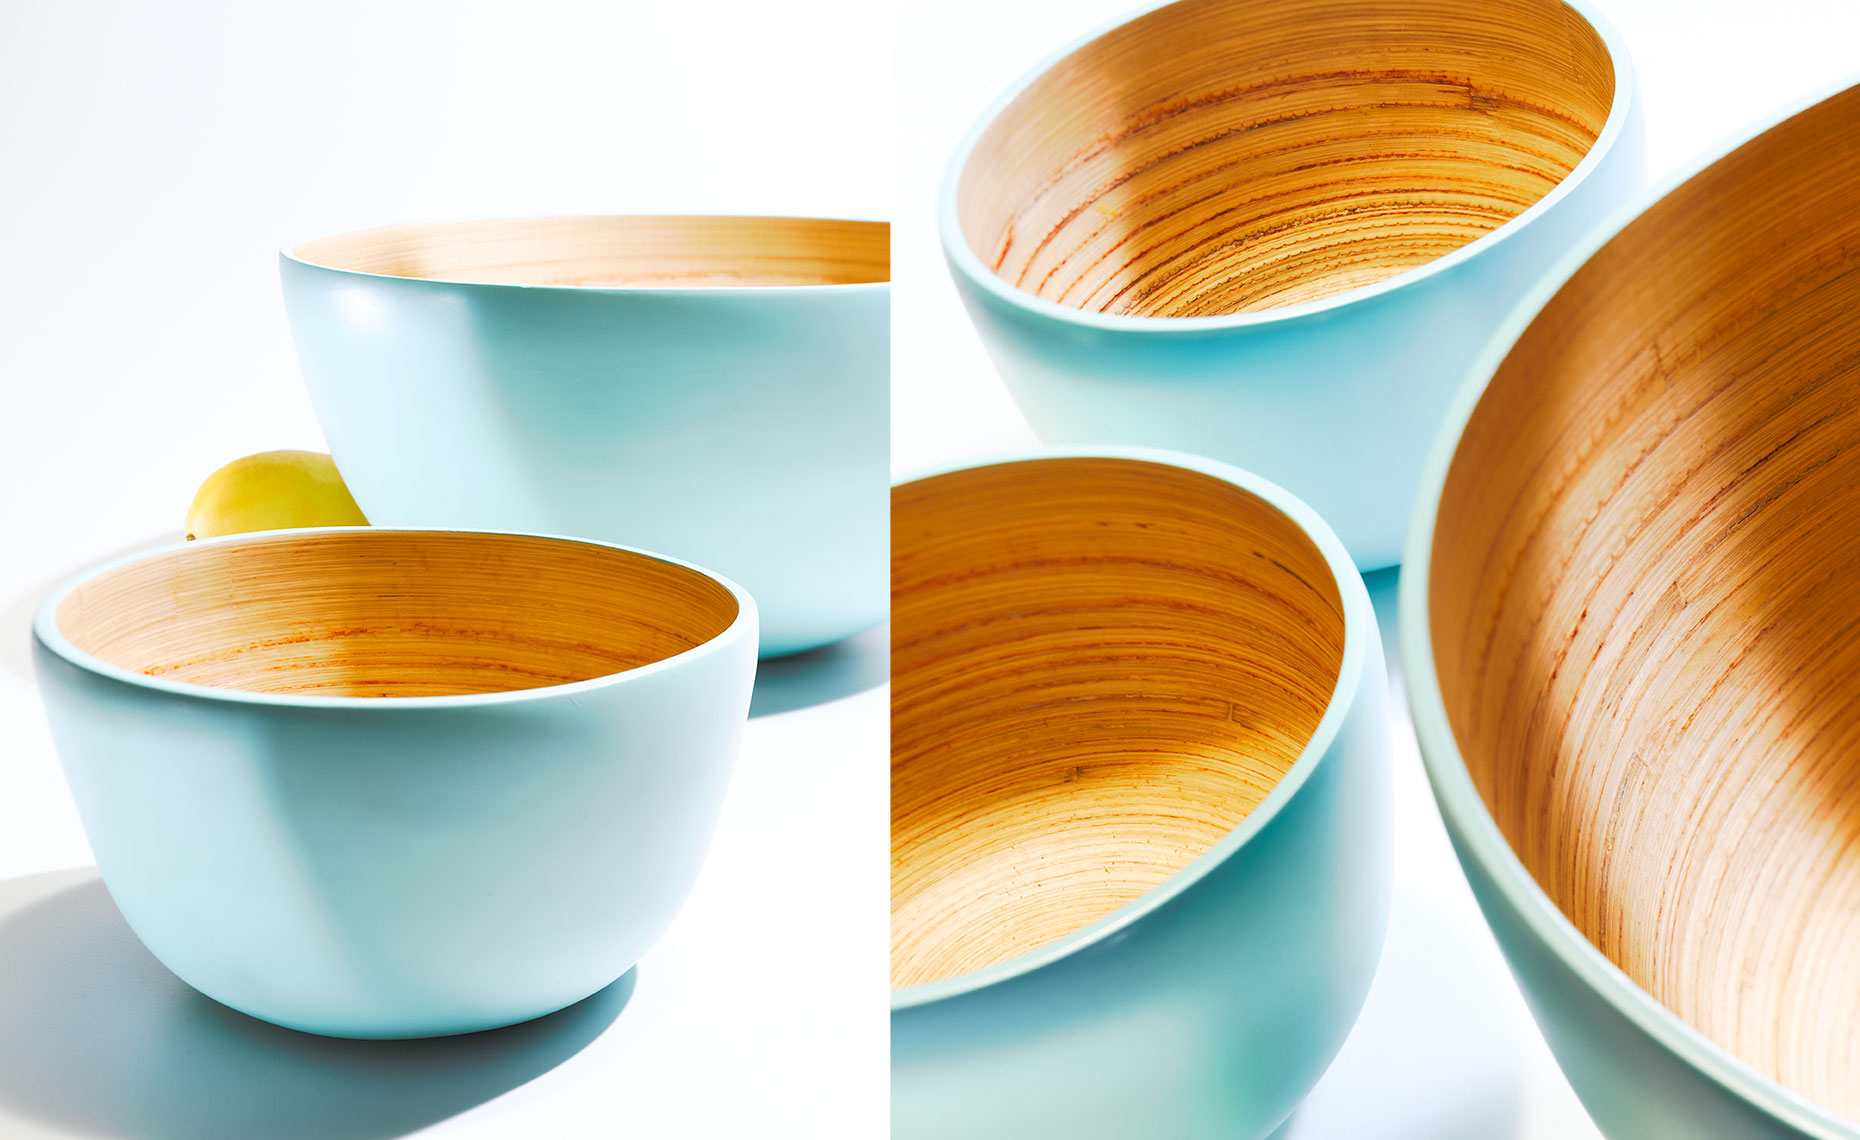 Blue and orange bowls